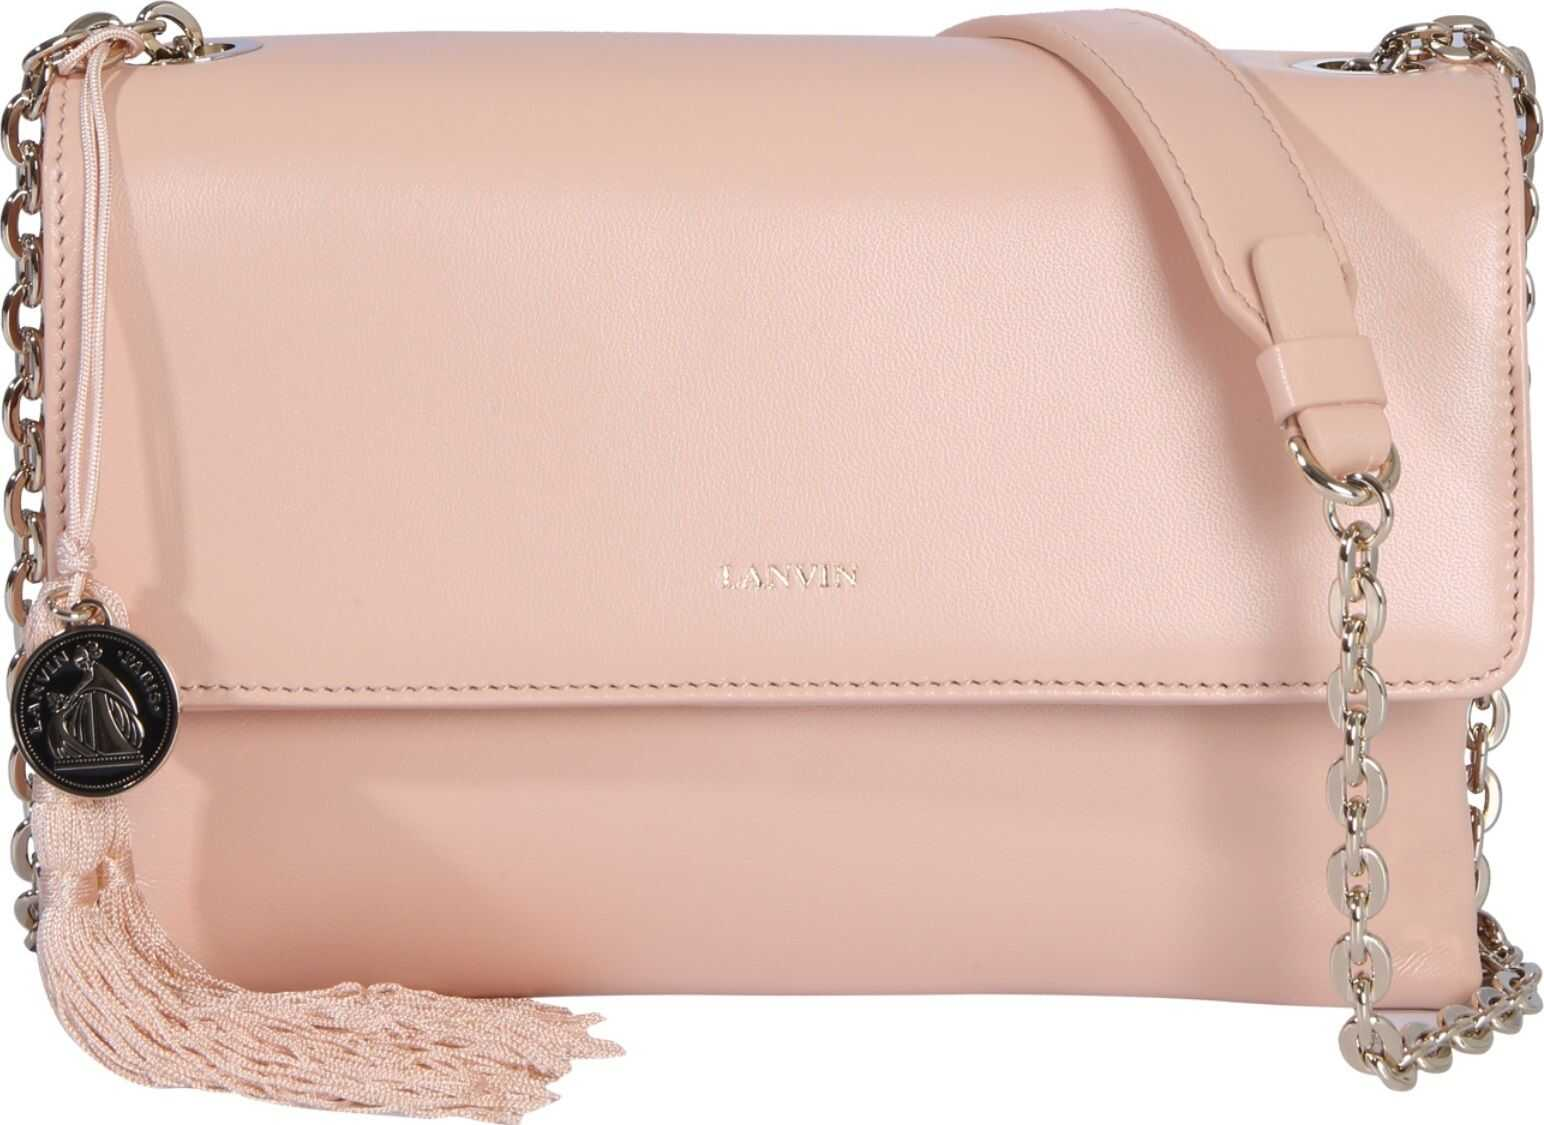 Lanvin Small Sugar Shoulder Bag NUDE